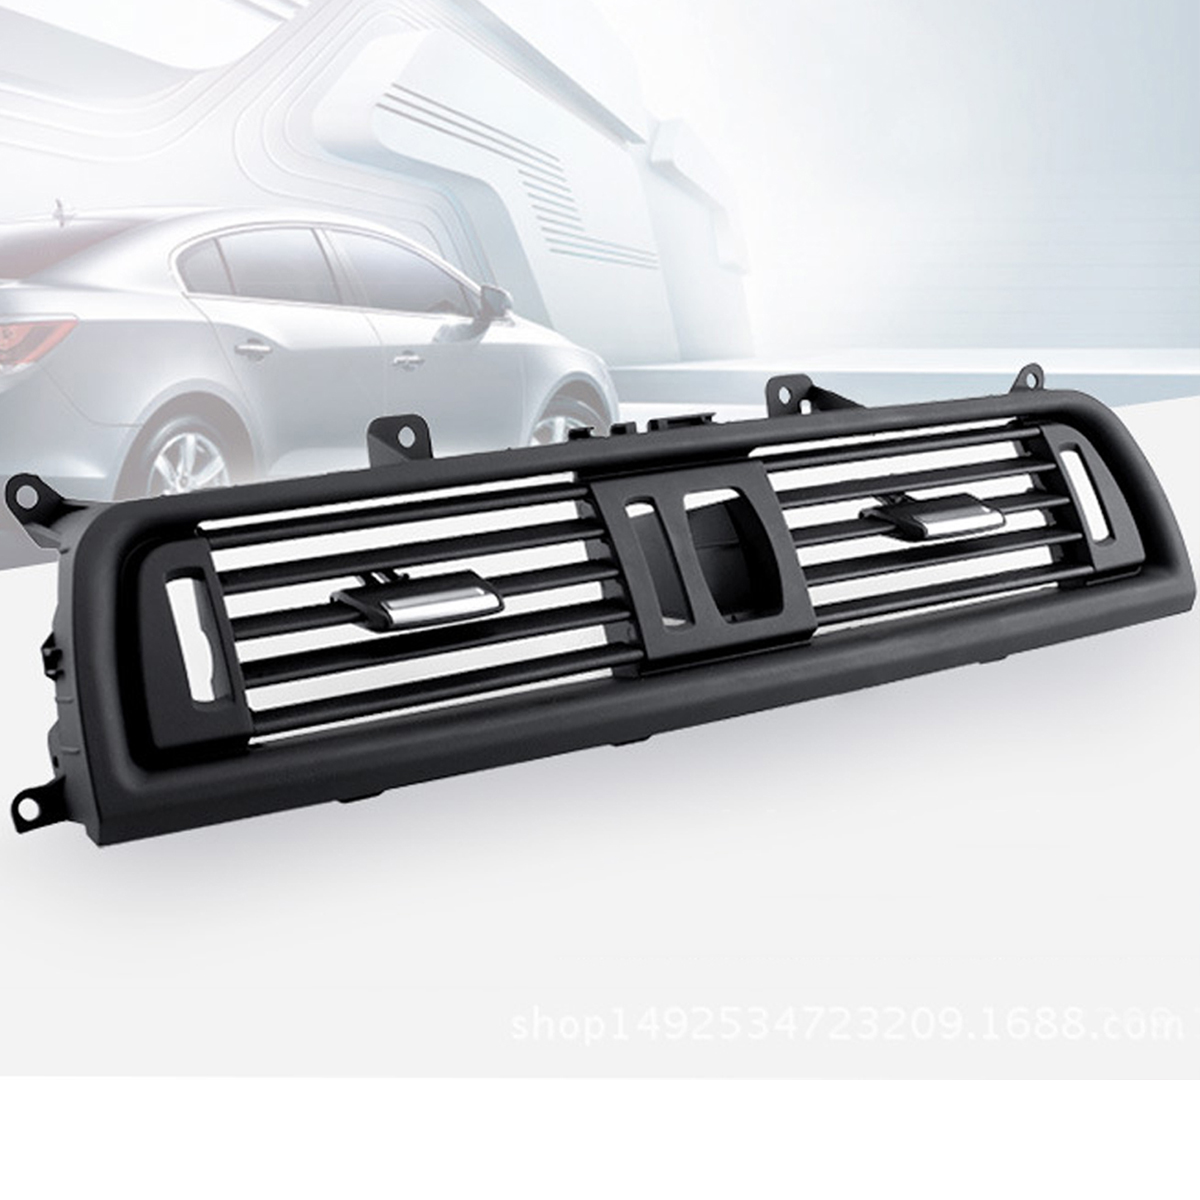 Car Front Dash Panel Center Fresh Air Outlet Vent Grille Cover For BMW 5 F10 F18